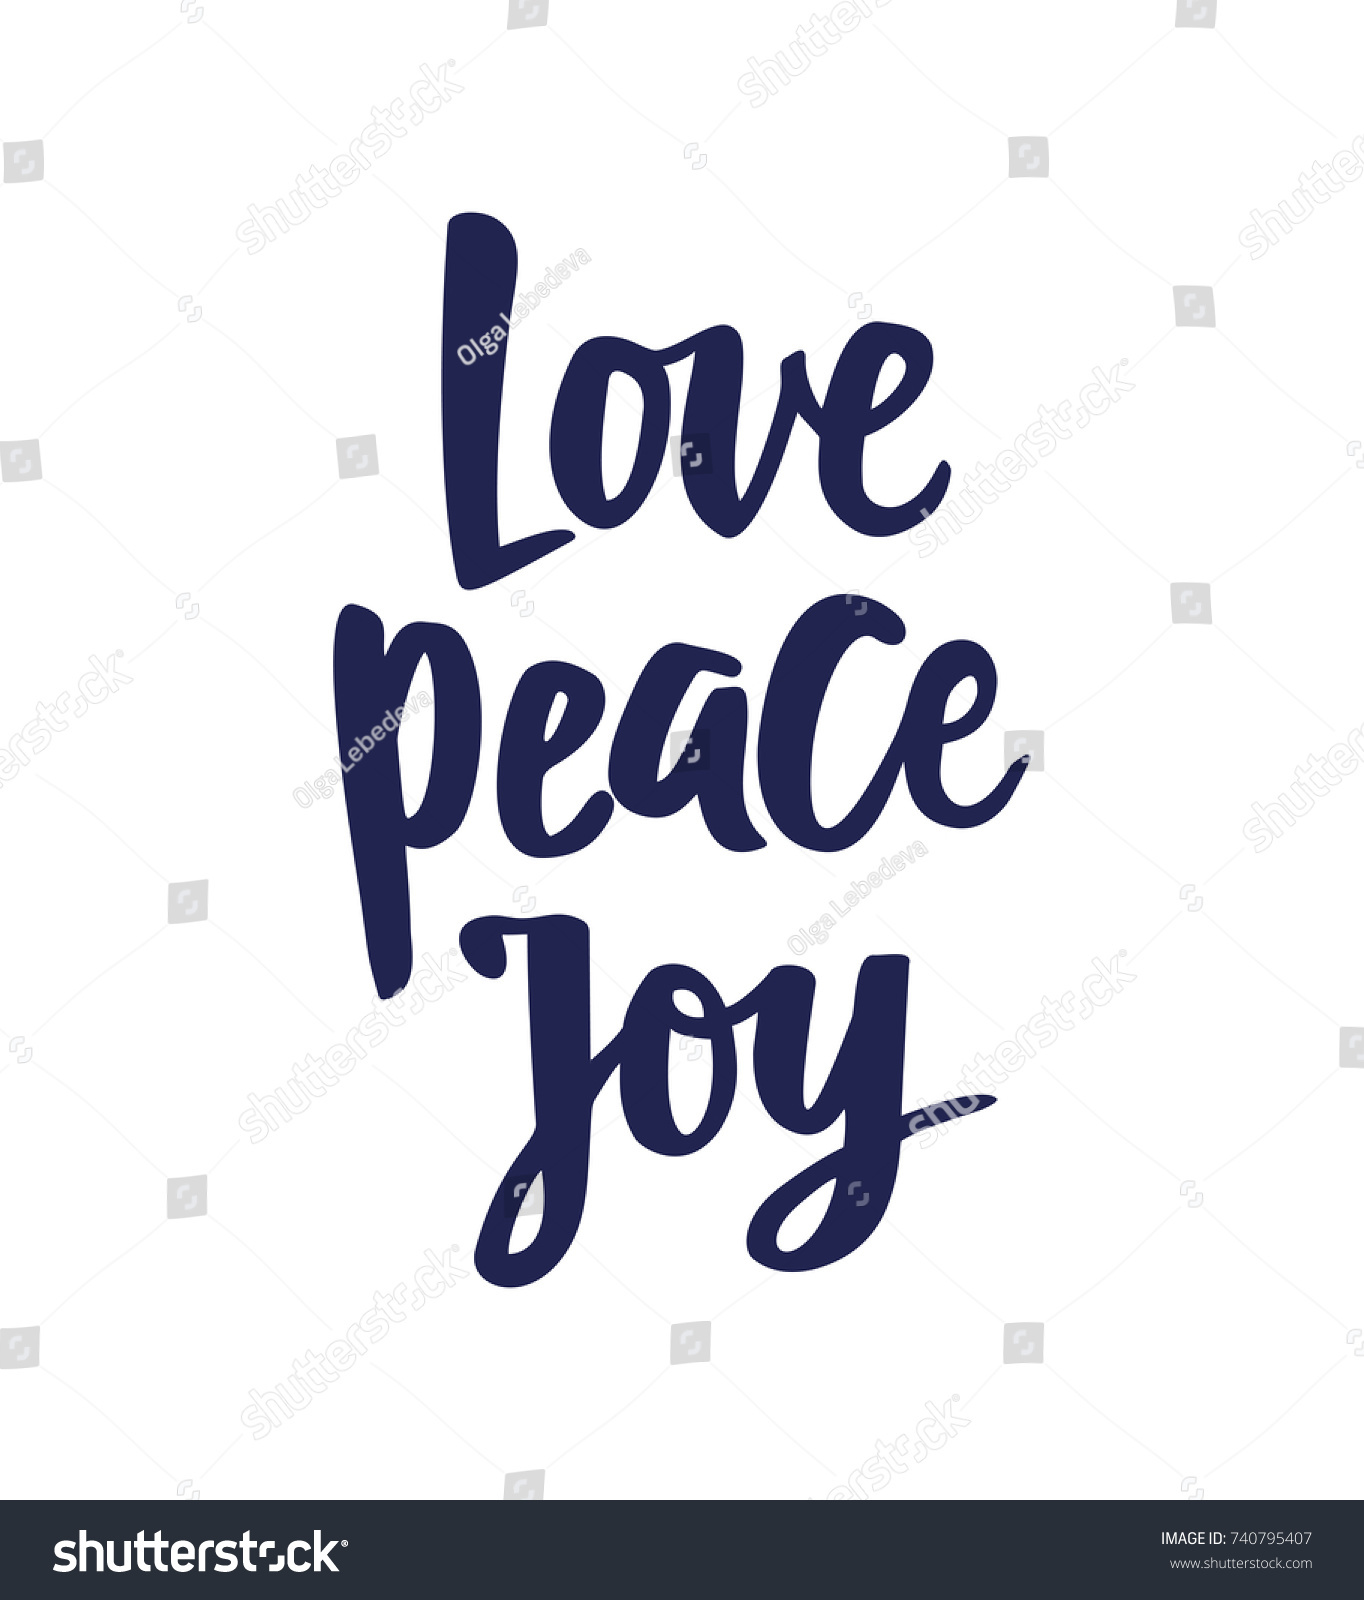 Peace Love Joy Quotes Love Peace Joy Text Hand Drawn Stock Vector 740795407  Shutterstock